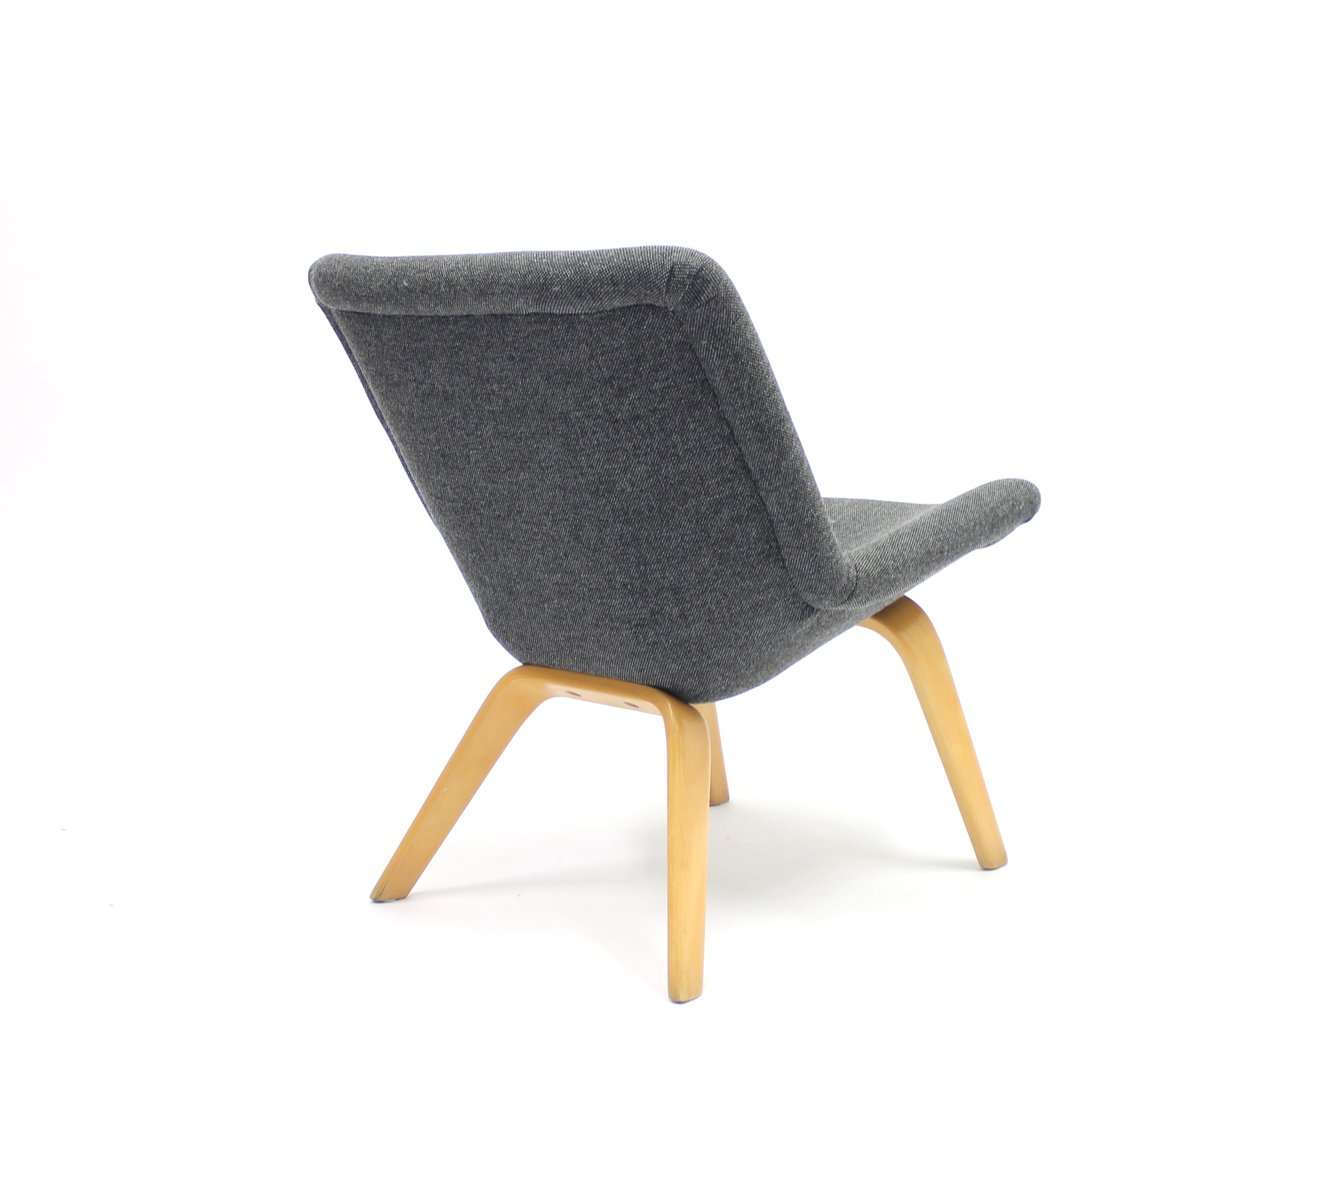 Easy Chair by Carl Gustaf Hiort af Ornäs for Gösta Westerberg, 1950s for sale at Pamono